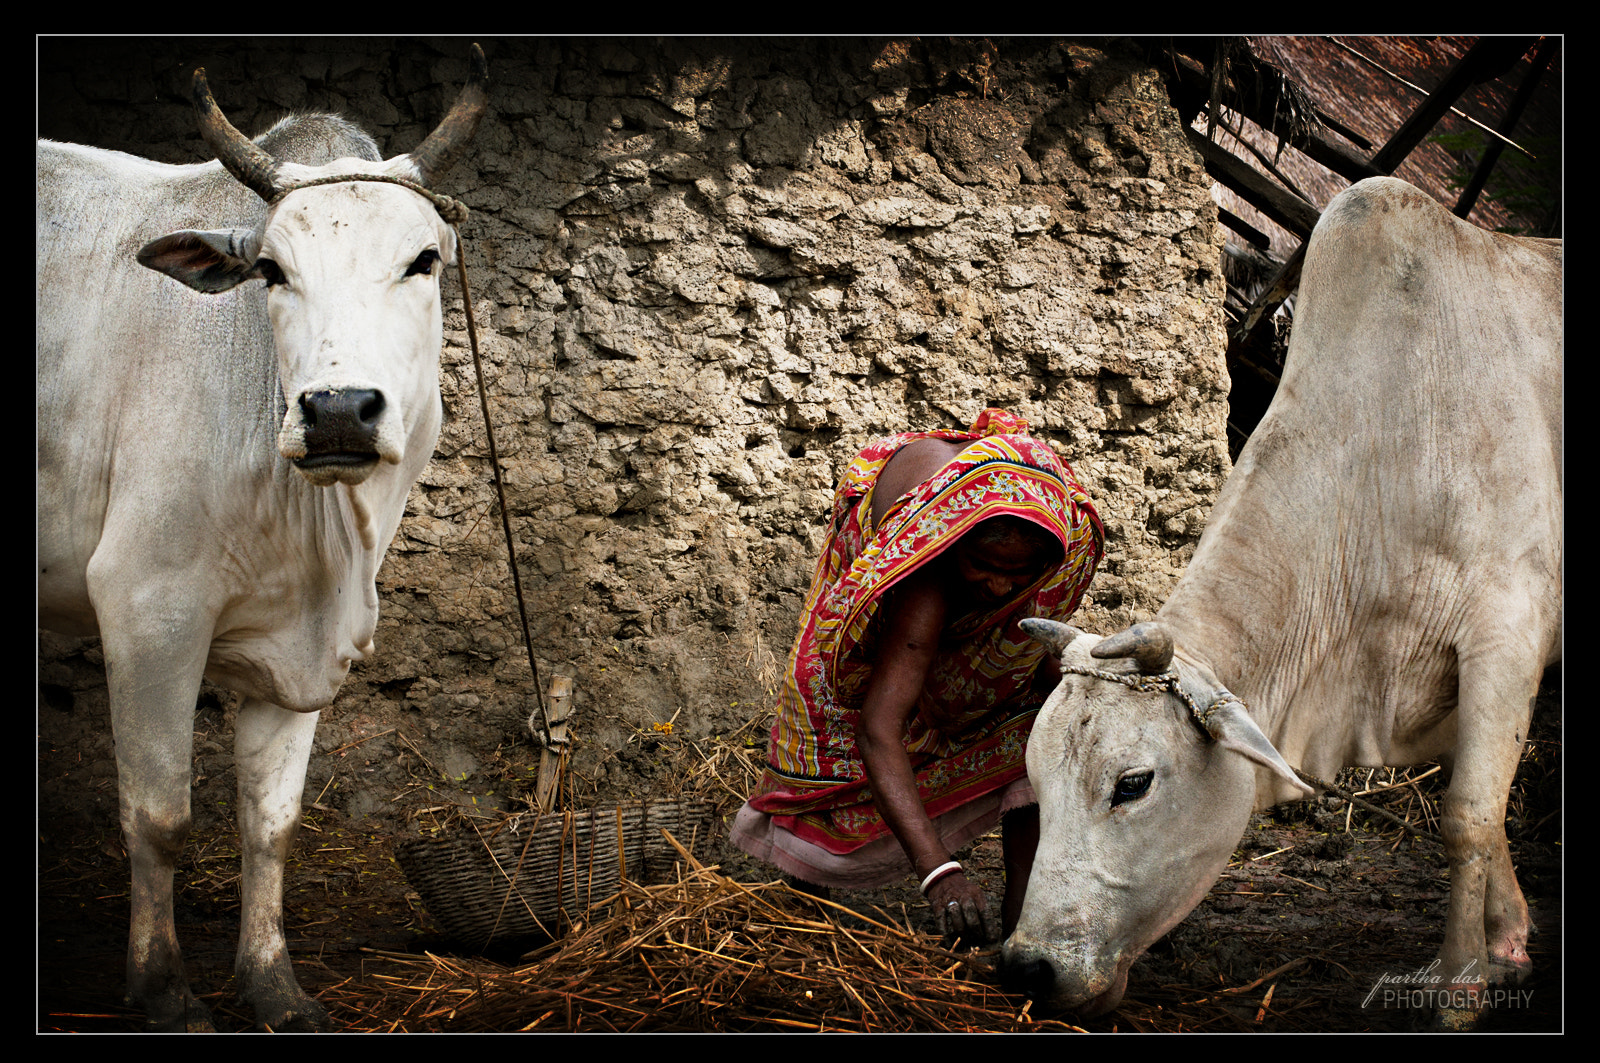 Photograph a village woman cares for her cows... by Partha Das on 500px